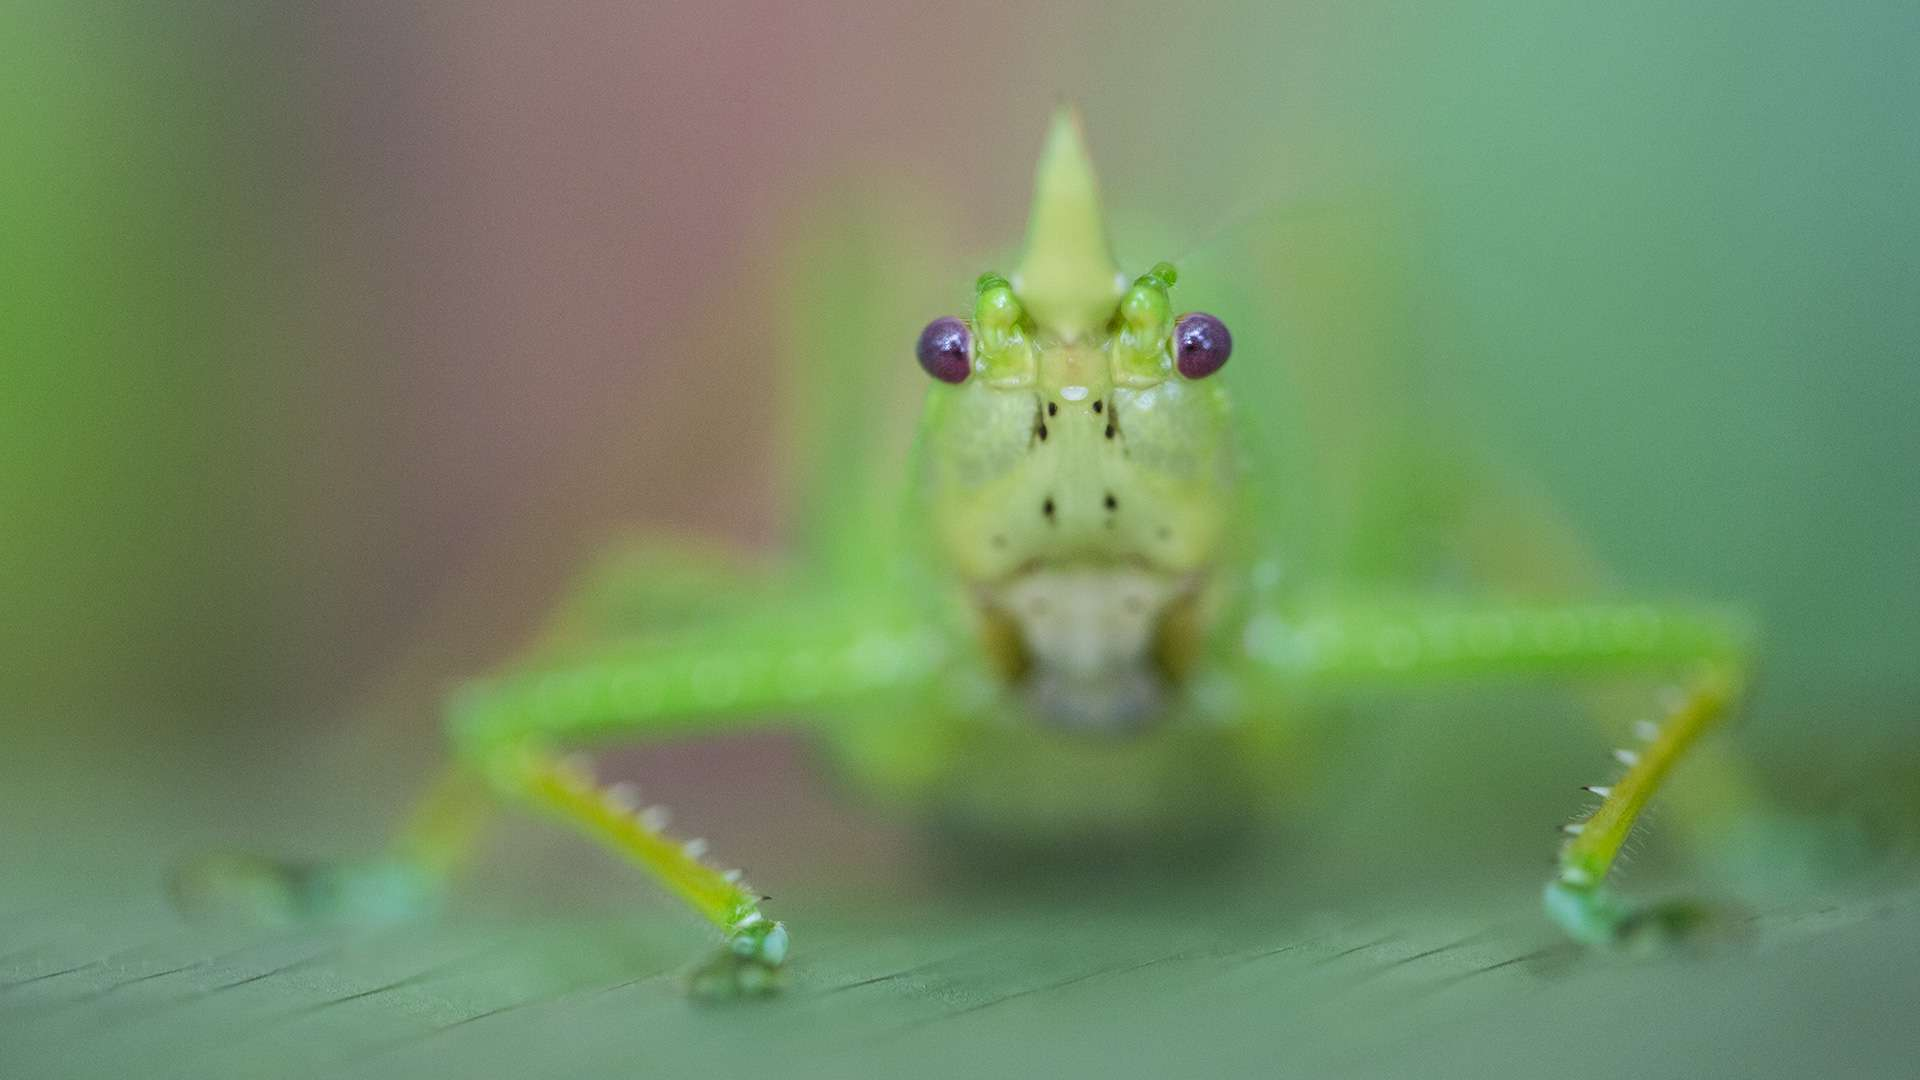 Gilles Martin's photograph of a grasshopper from Costa Rica